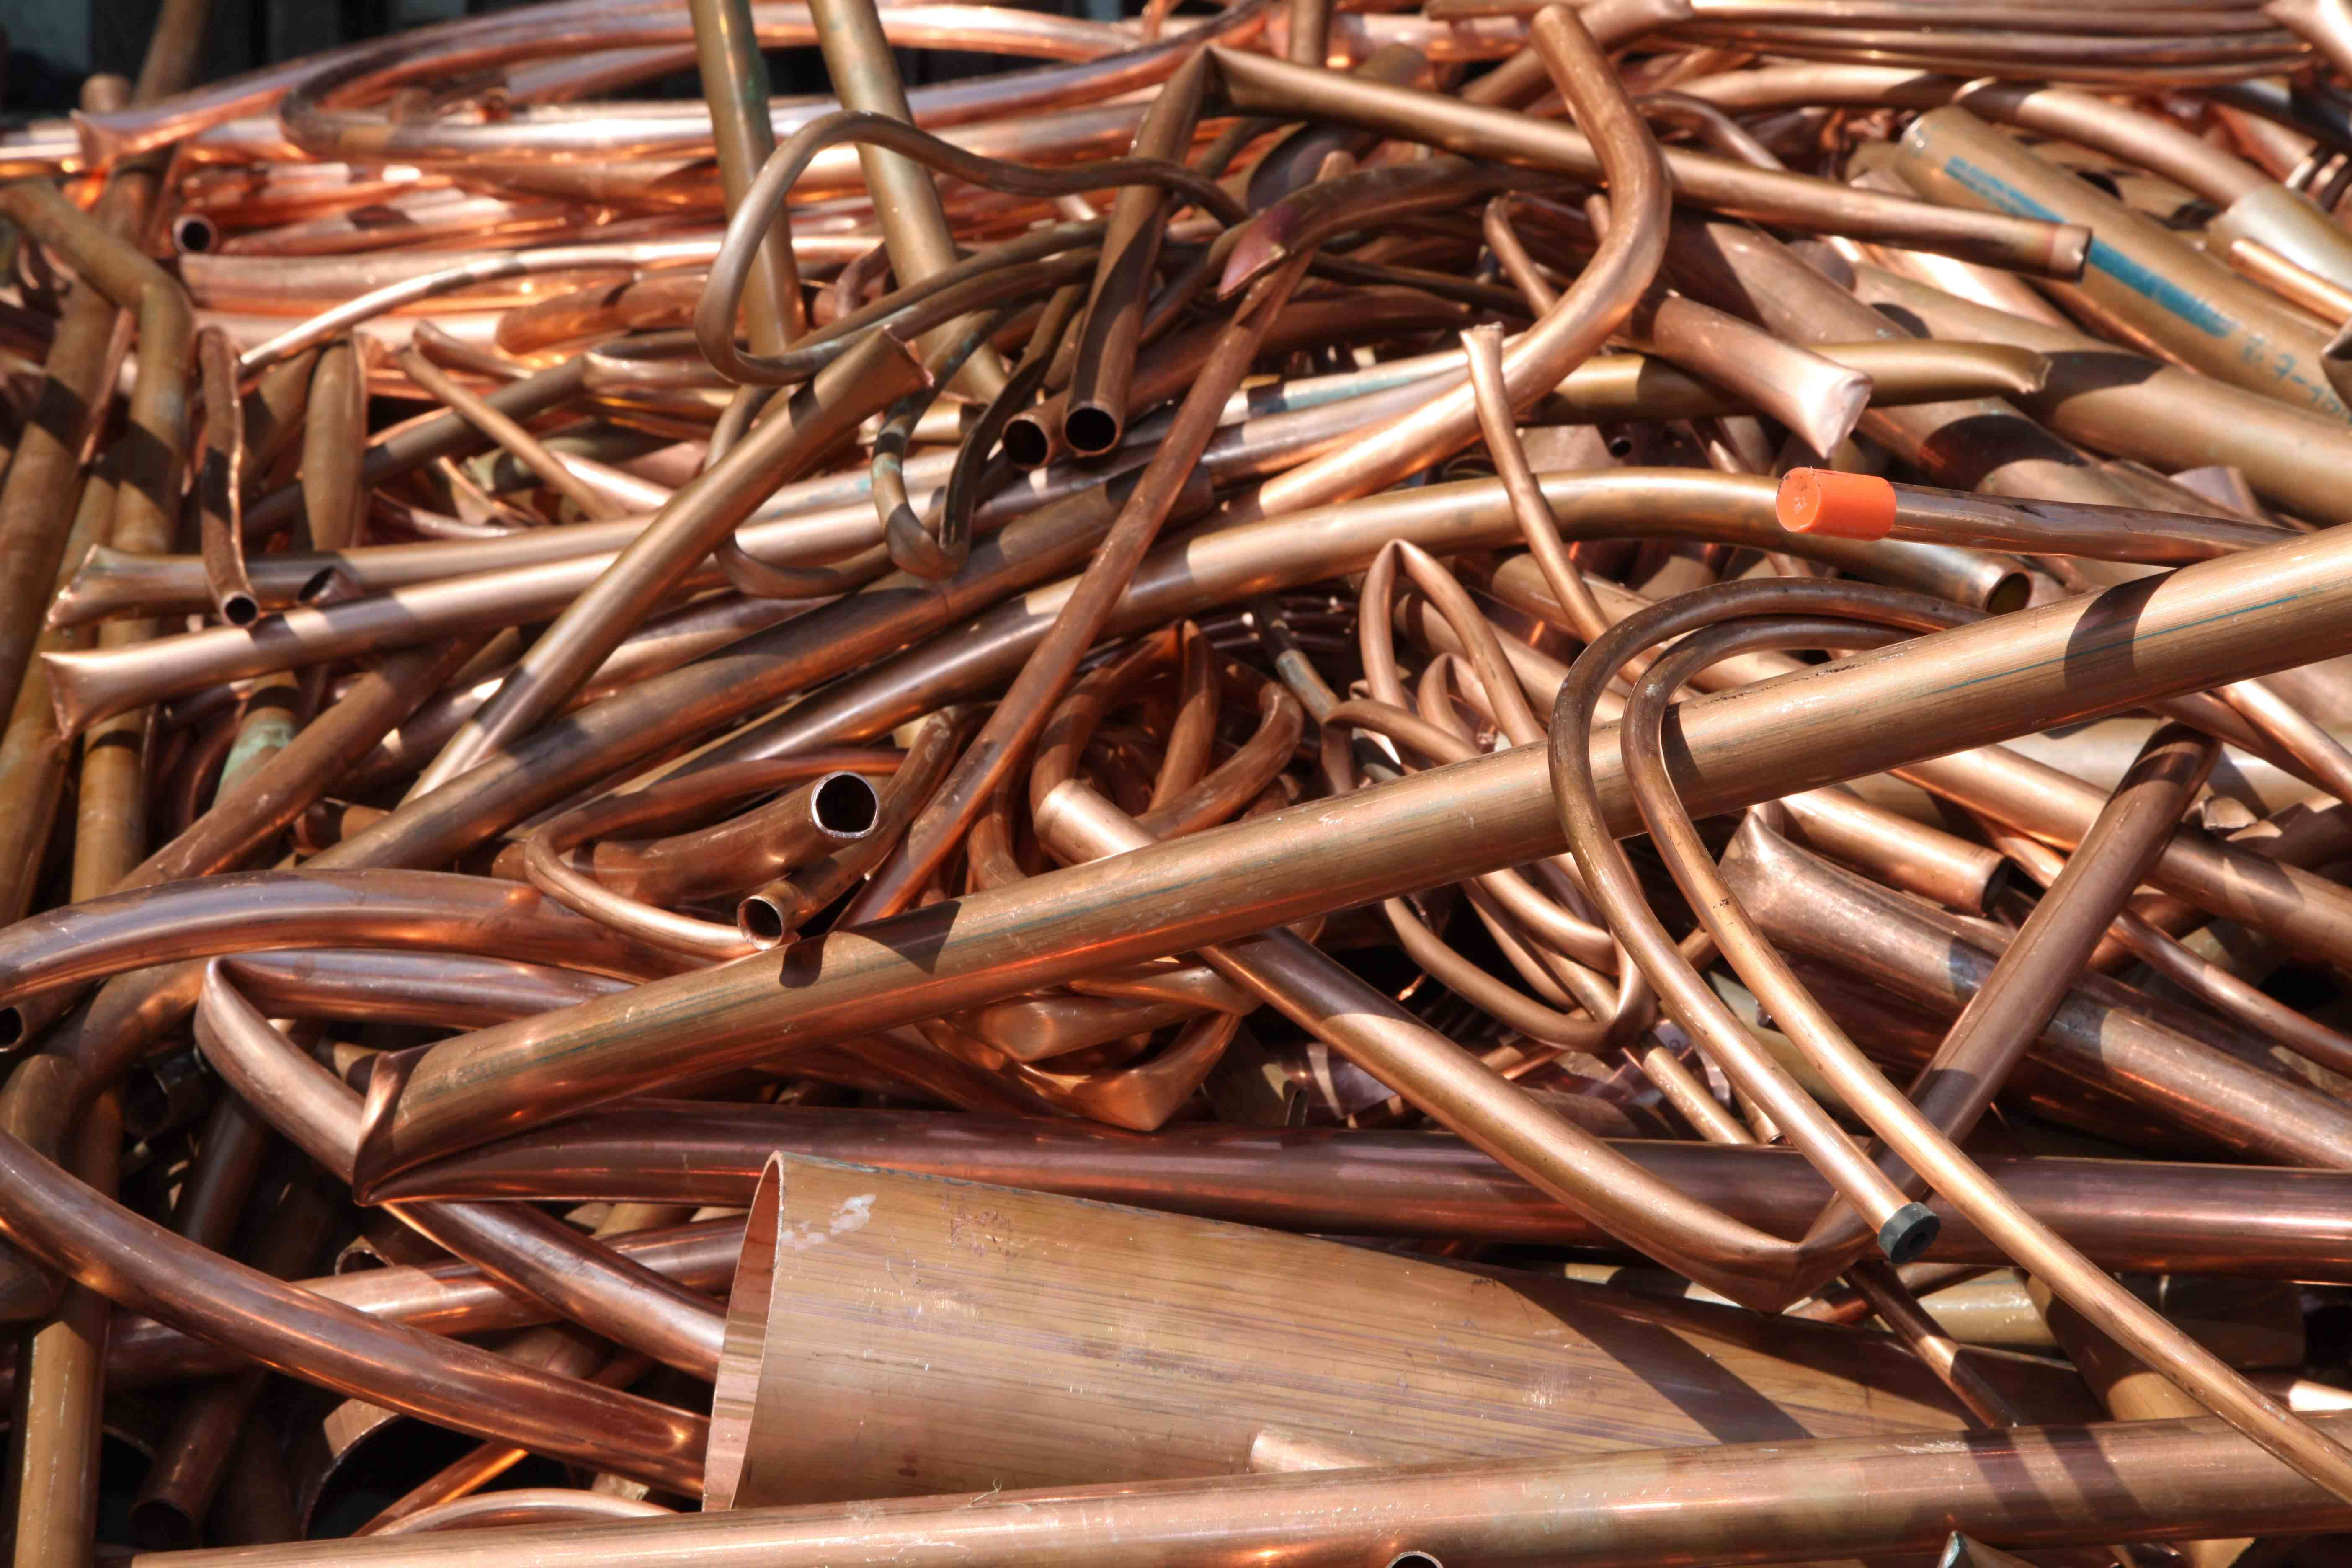 Best Baltimore Scrap Recycling Company Owl Metals Inc Details About 1 Lb Cell Phone Circuit Boards Gold Recovery Ii Copper